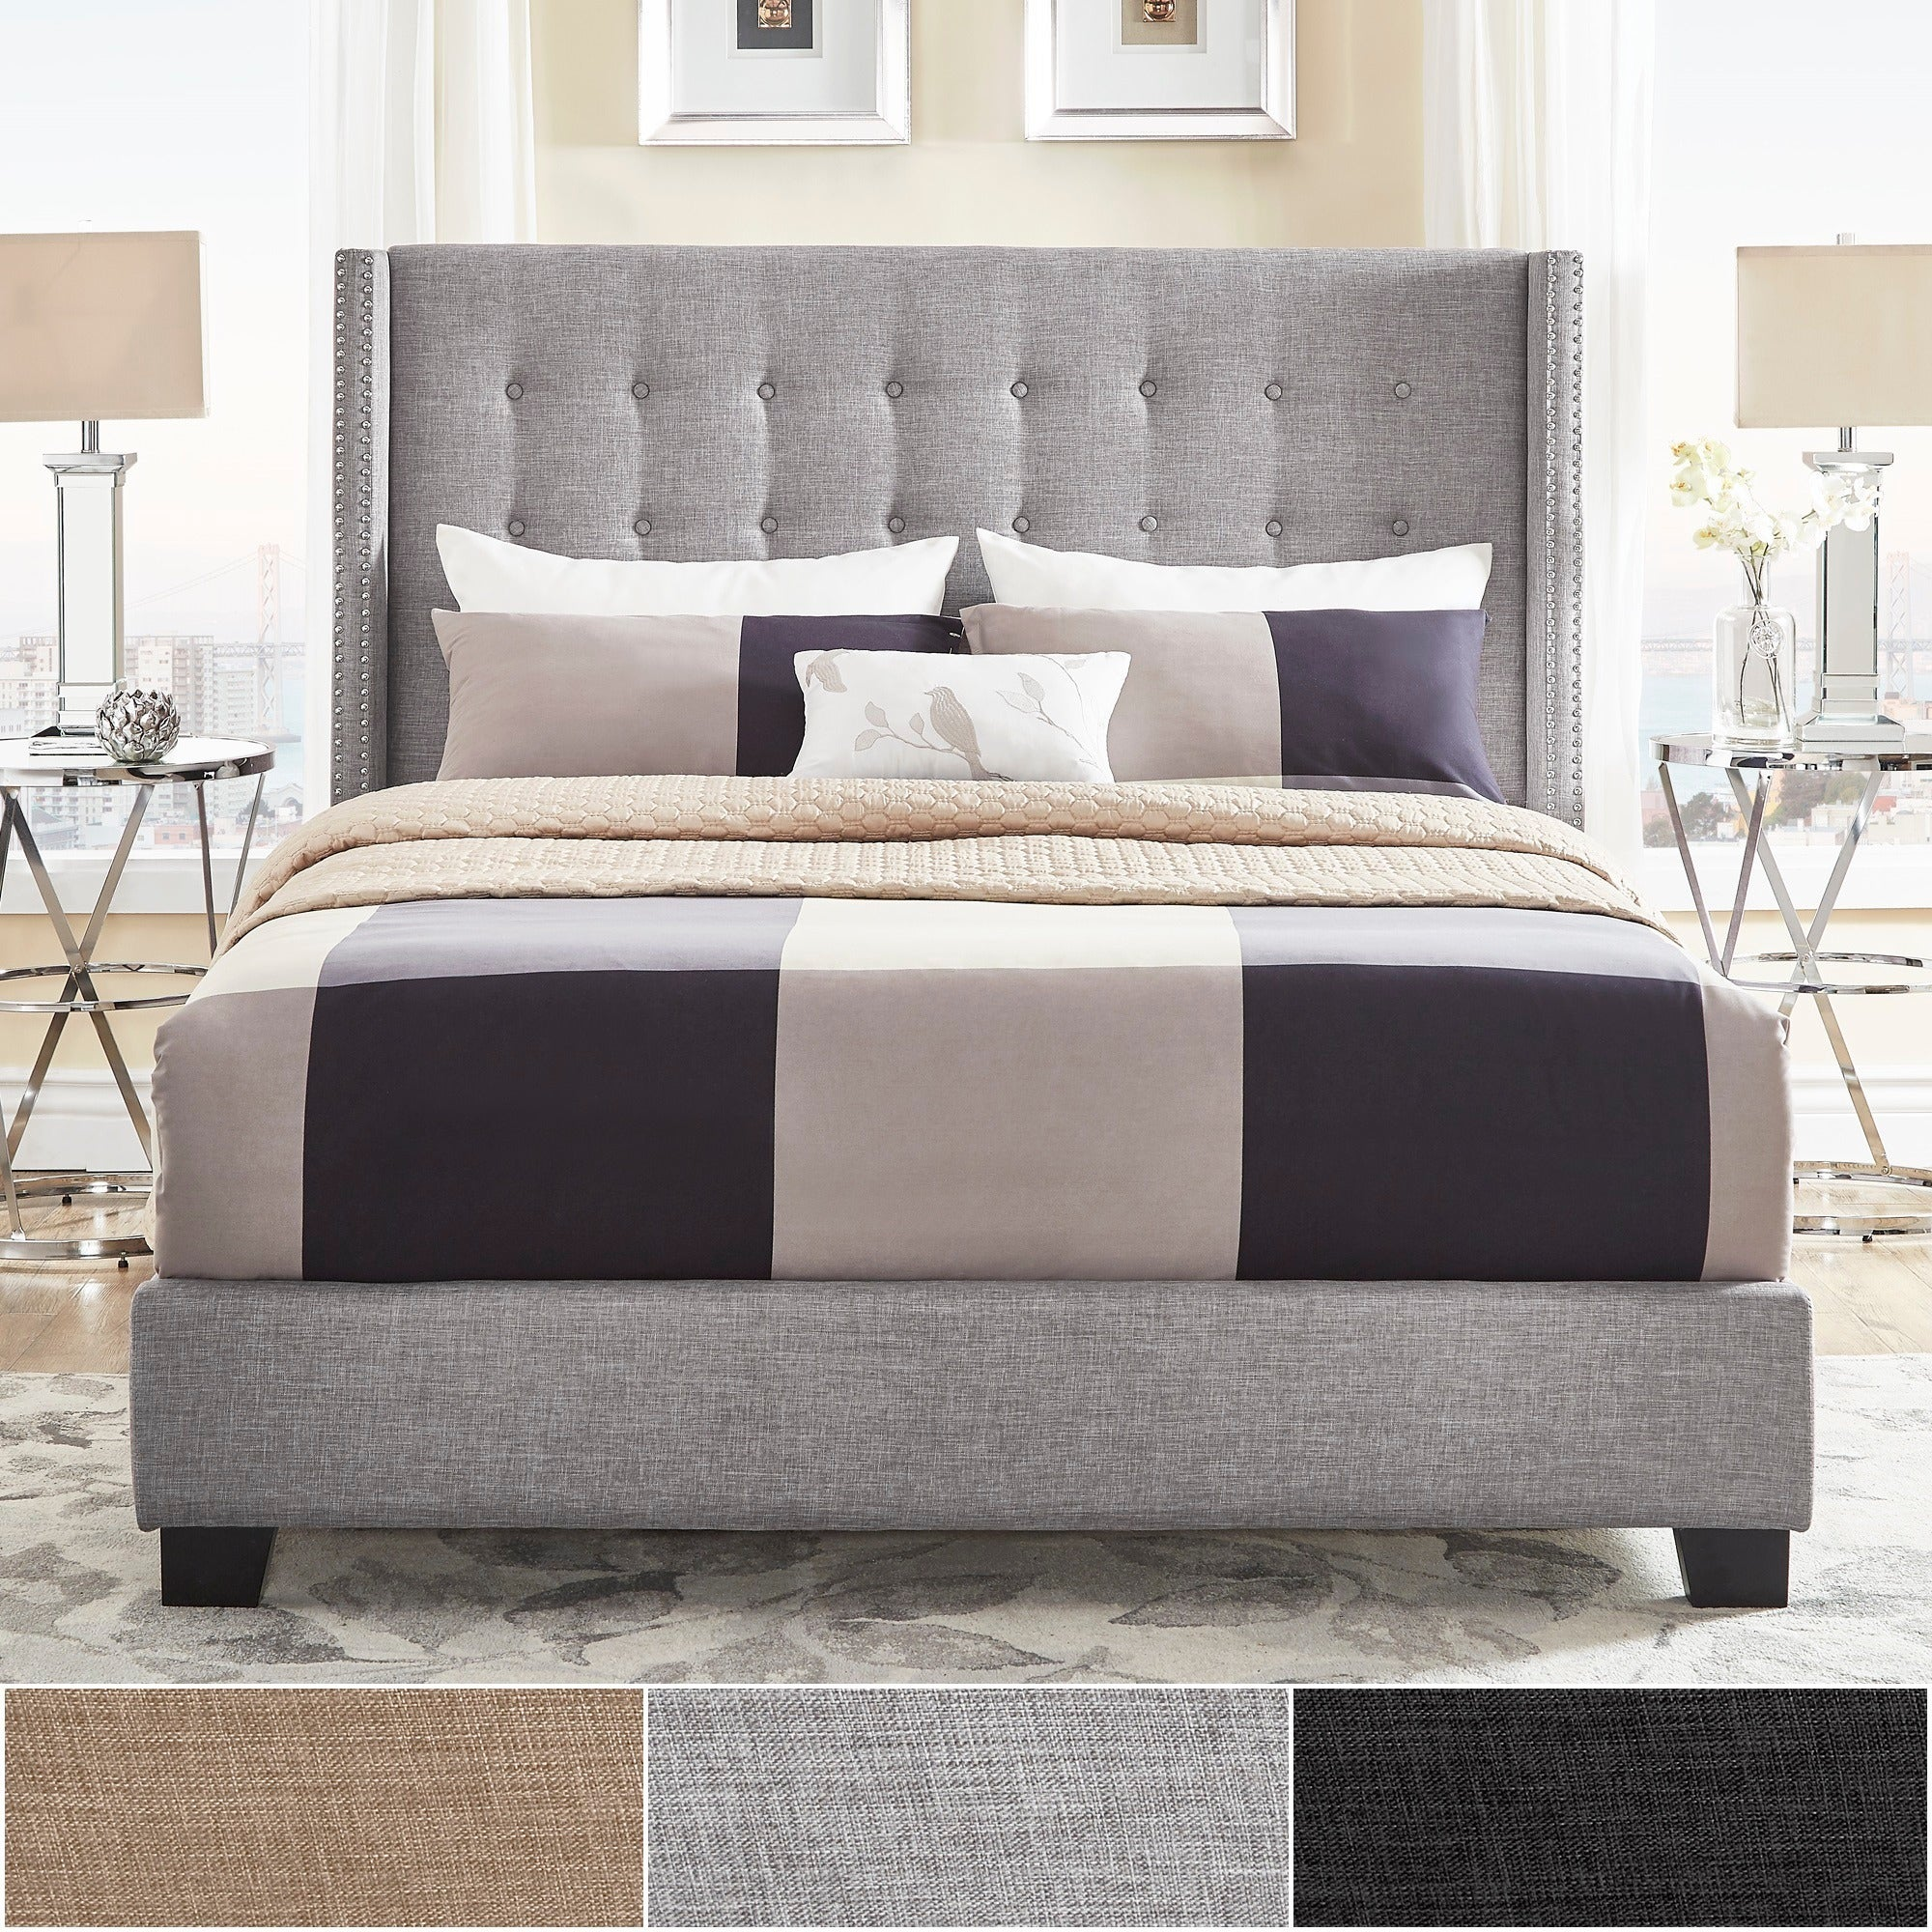 of platform full queen and panel tufted winged bed headboard frame trundle head fabric mattress gray size upholstered wingback king bedding grey